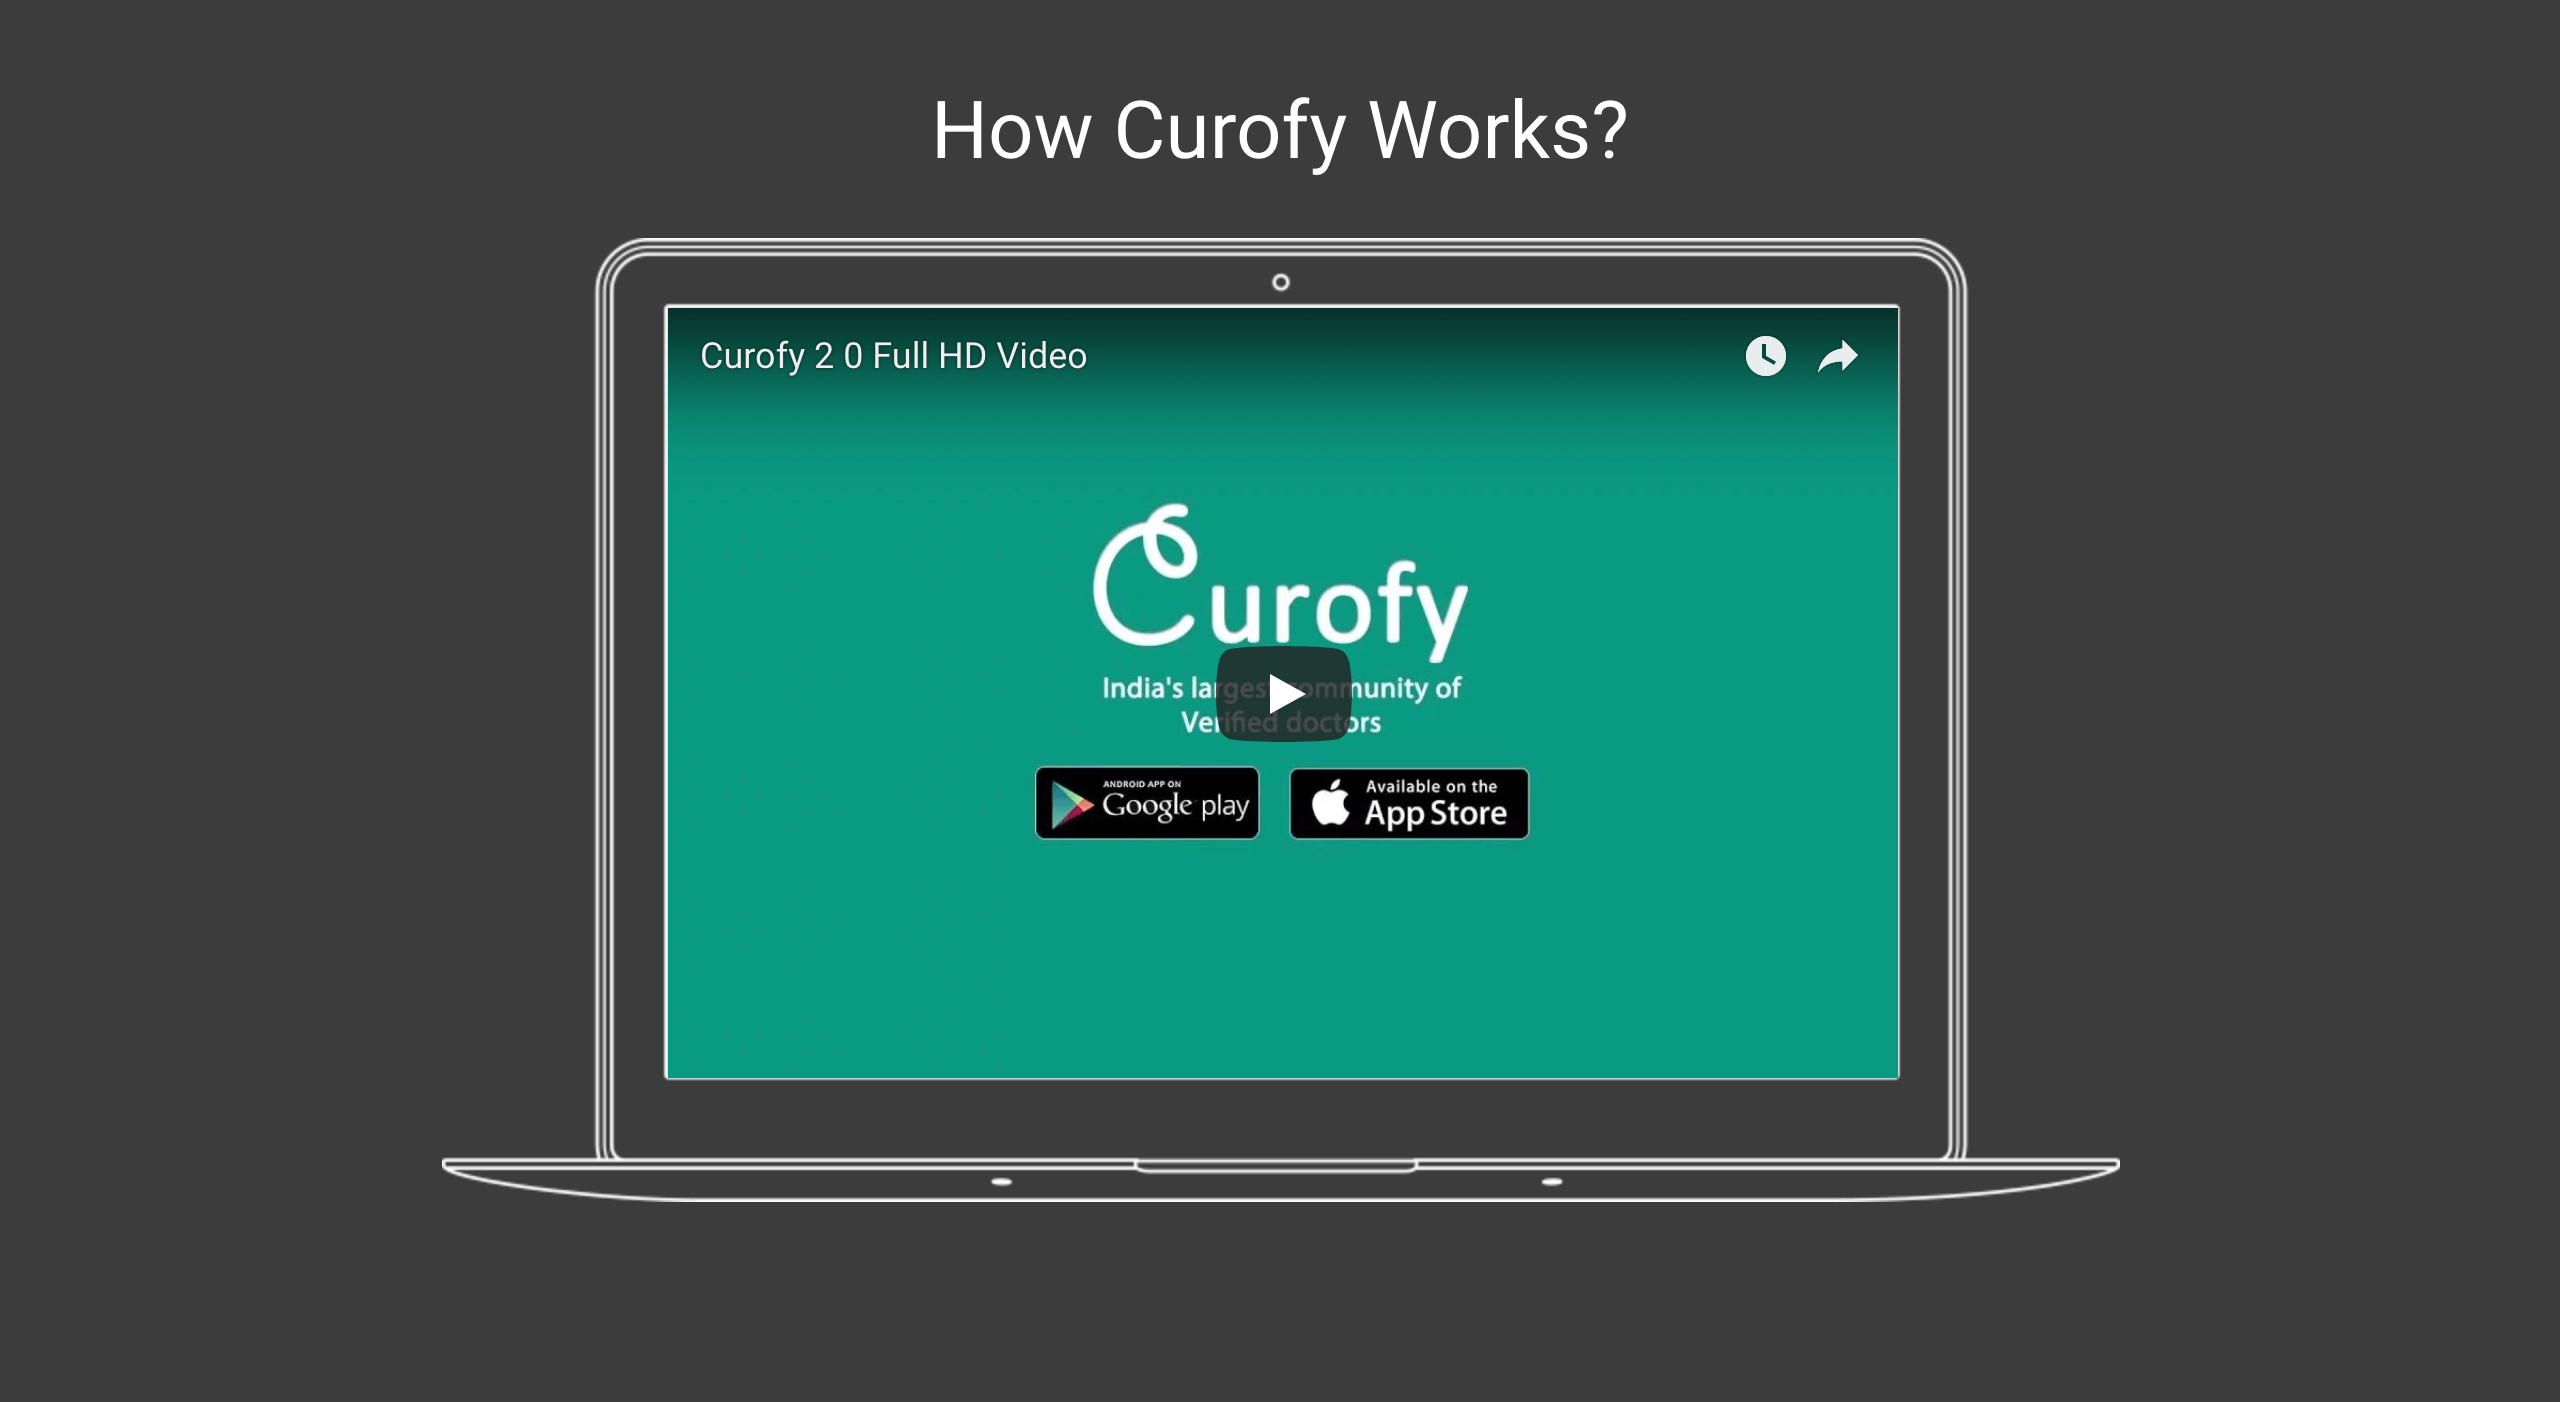 How Curofy Works?